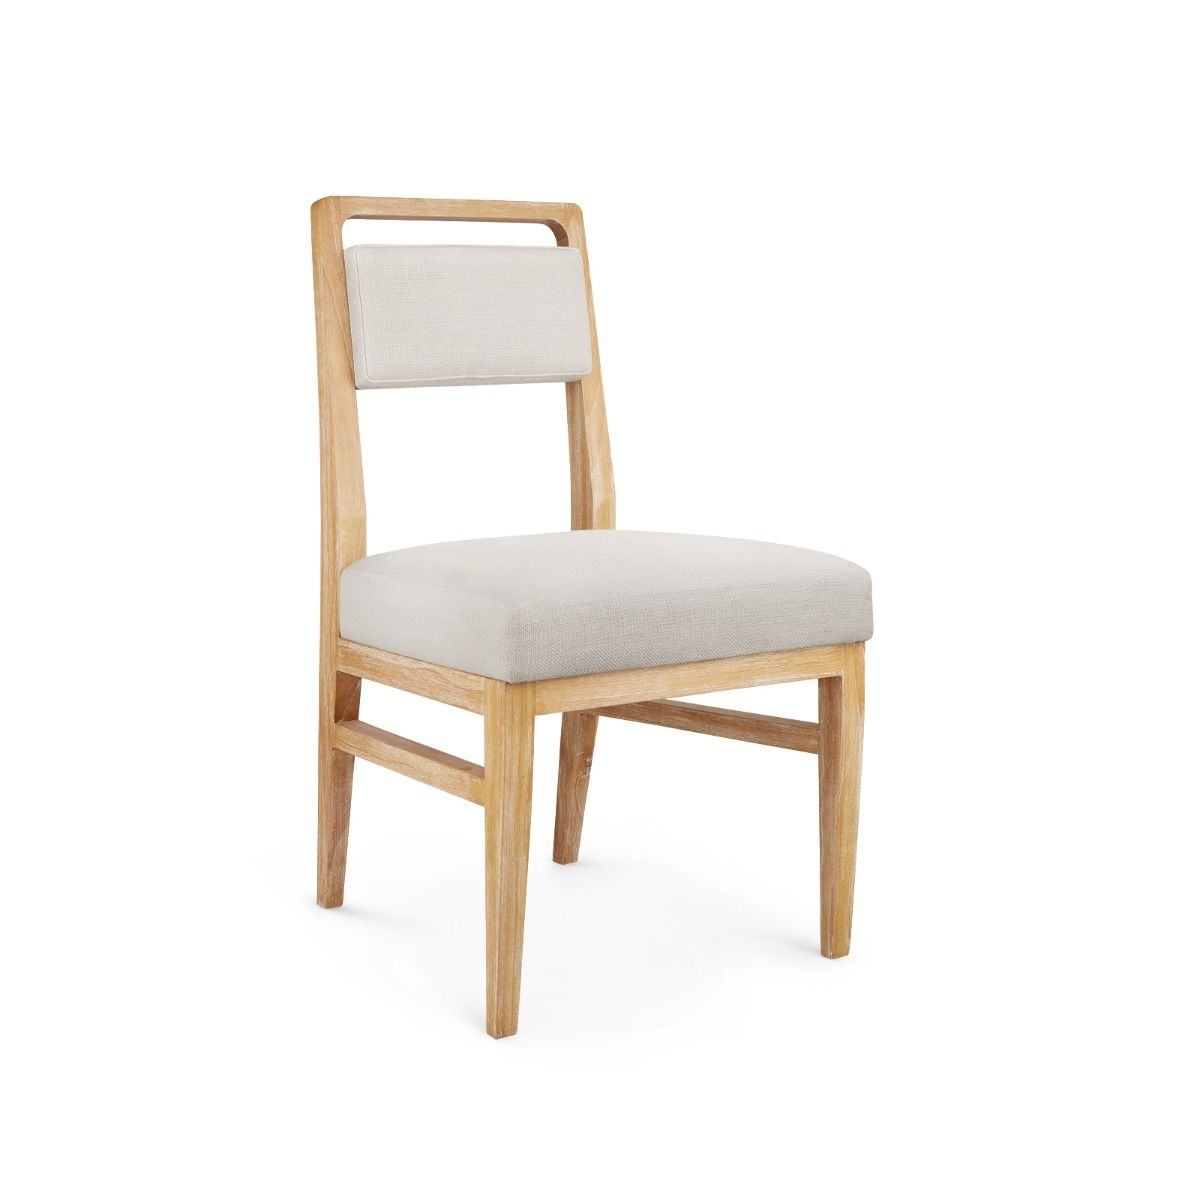 Bungalow 5 - JAMES SIDE CHAIR, NATURAL